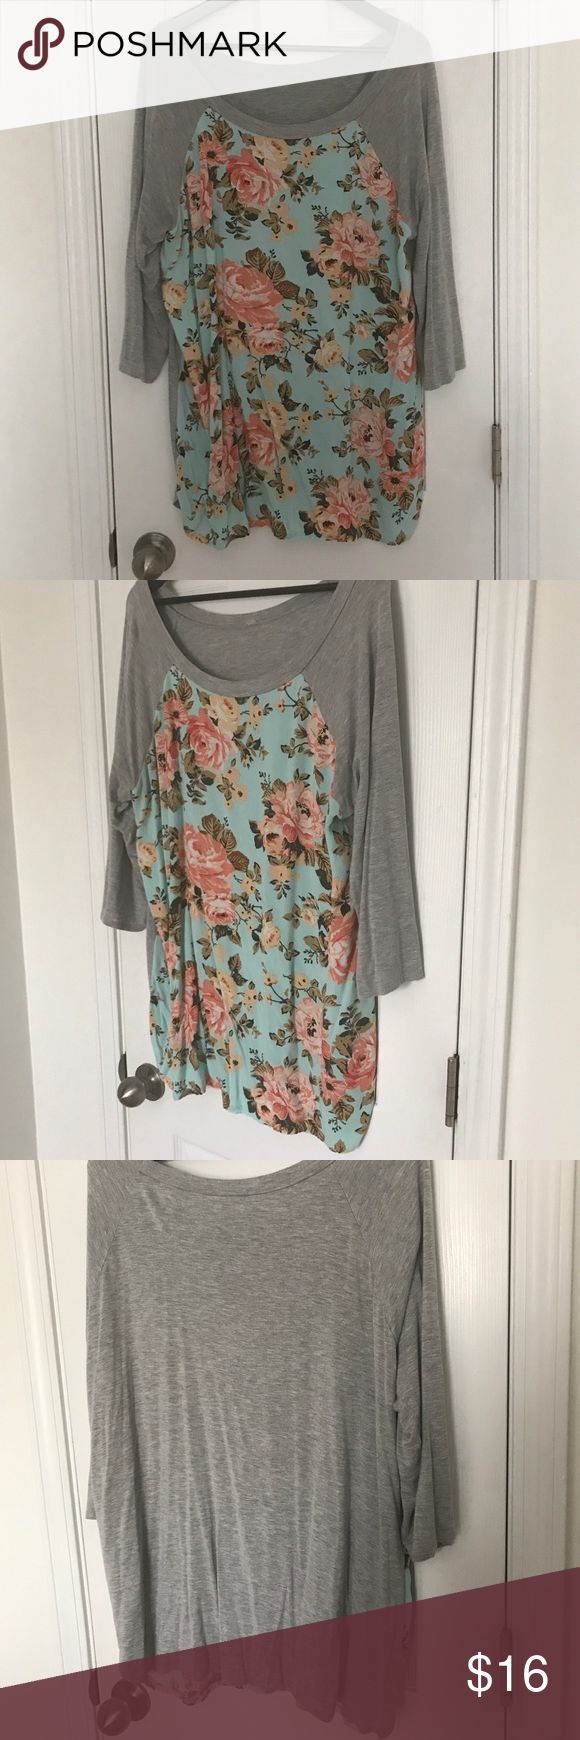 Plus size baseball T shirt with floral front I cut the tag out because it was bothering me but this is an xxl. Slightly longer than regular T-shirt but not quite a tunic. You could potentially wear it with leggings if you were OK with it riding up a little. Tops